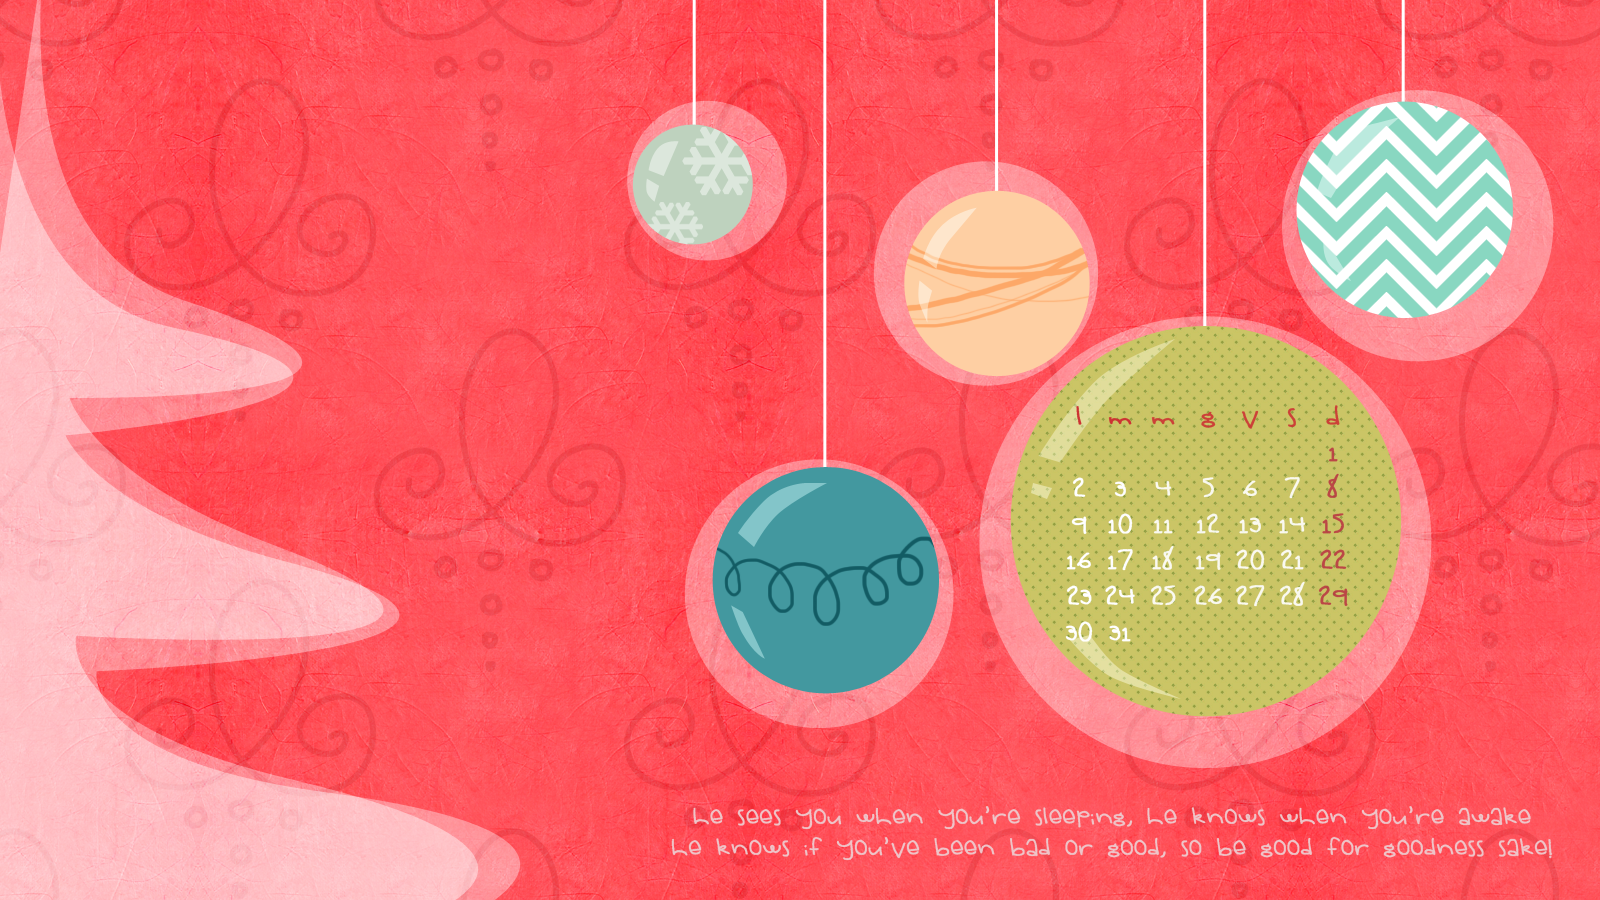 Free download: sfondo desktop dicembre con calendario